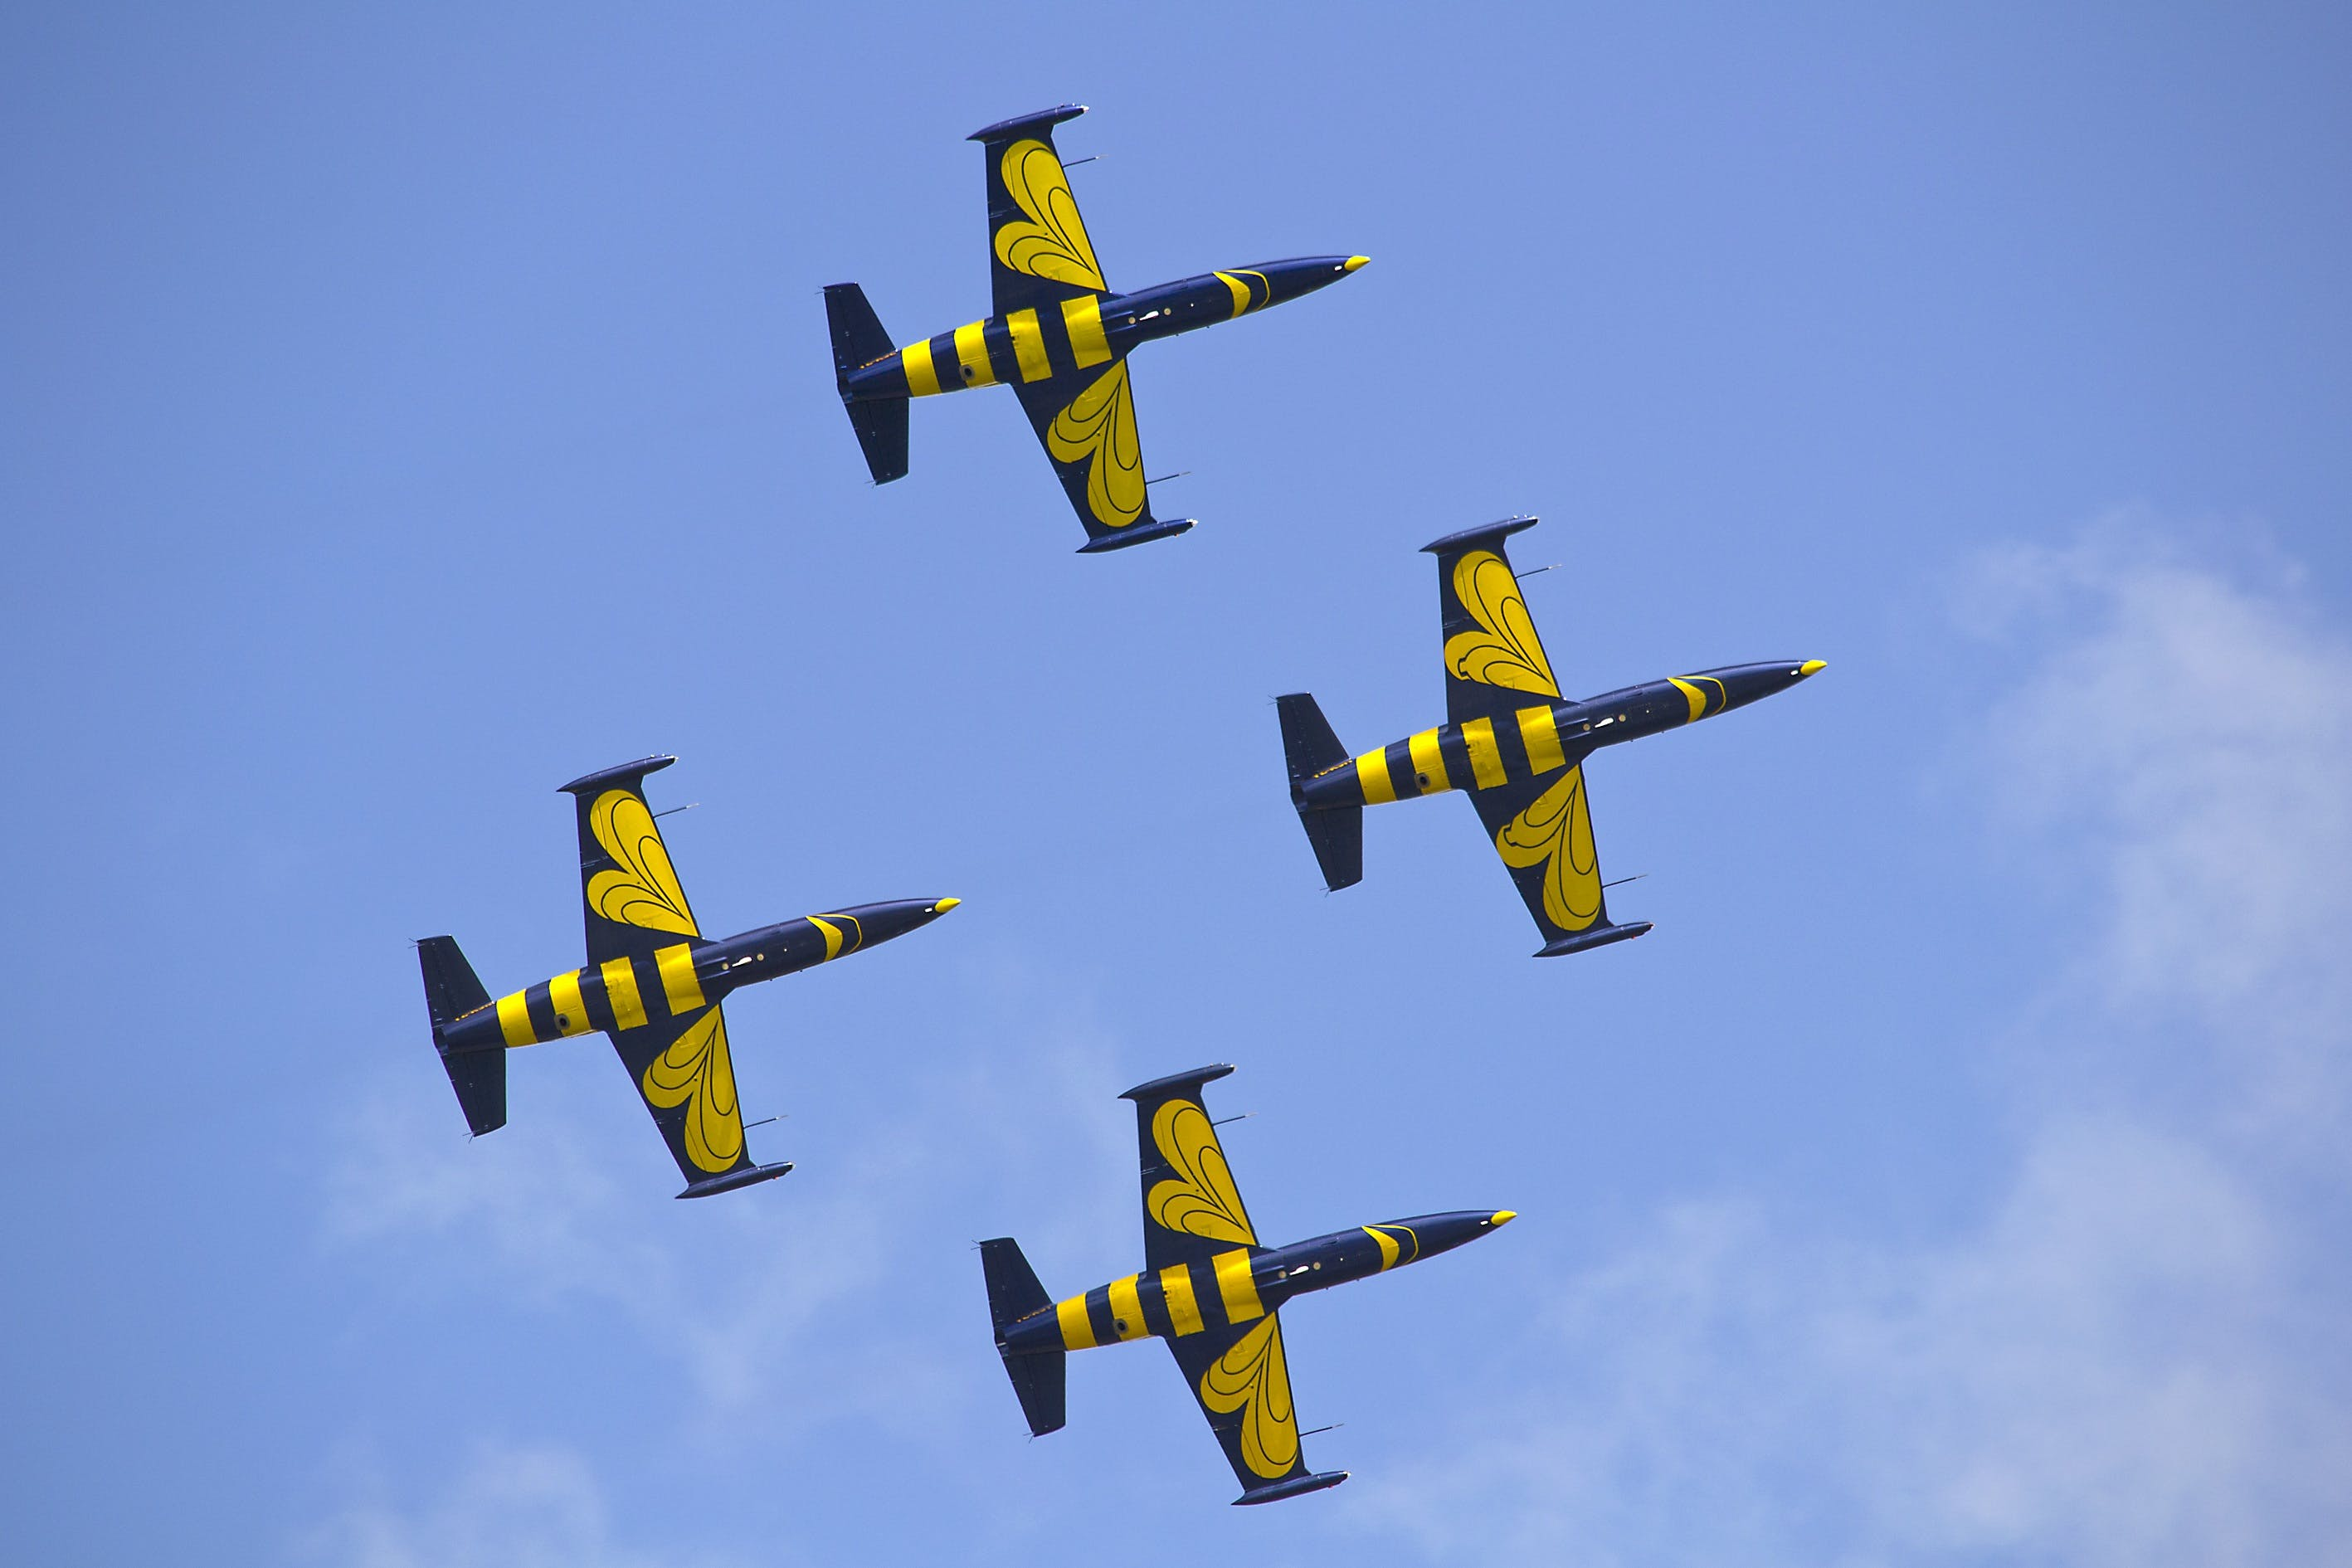 Yellow and Black Air Craft during Blue Sky